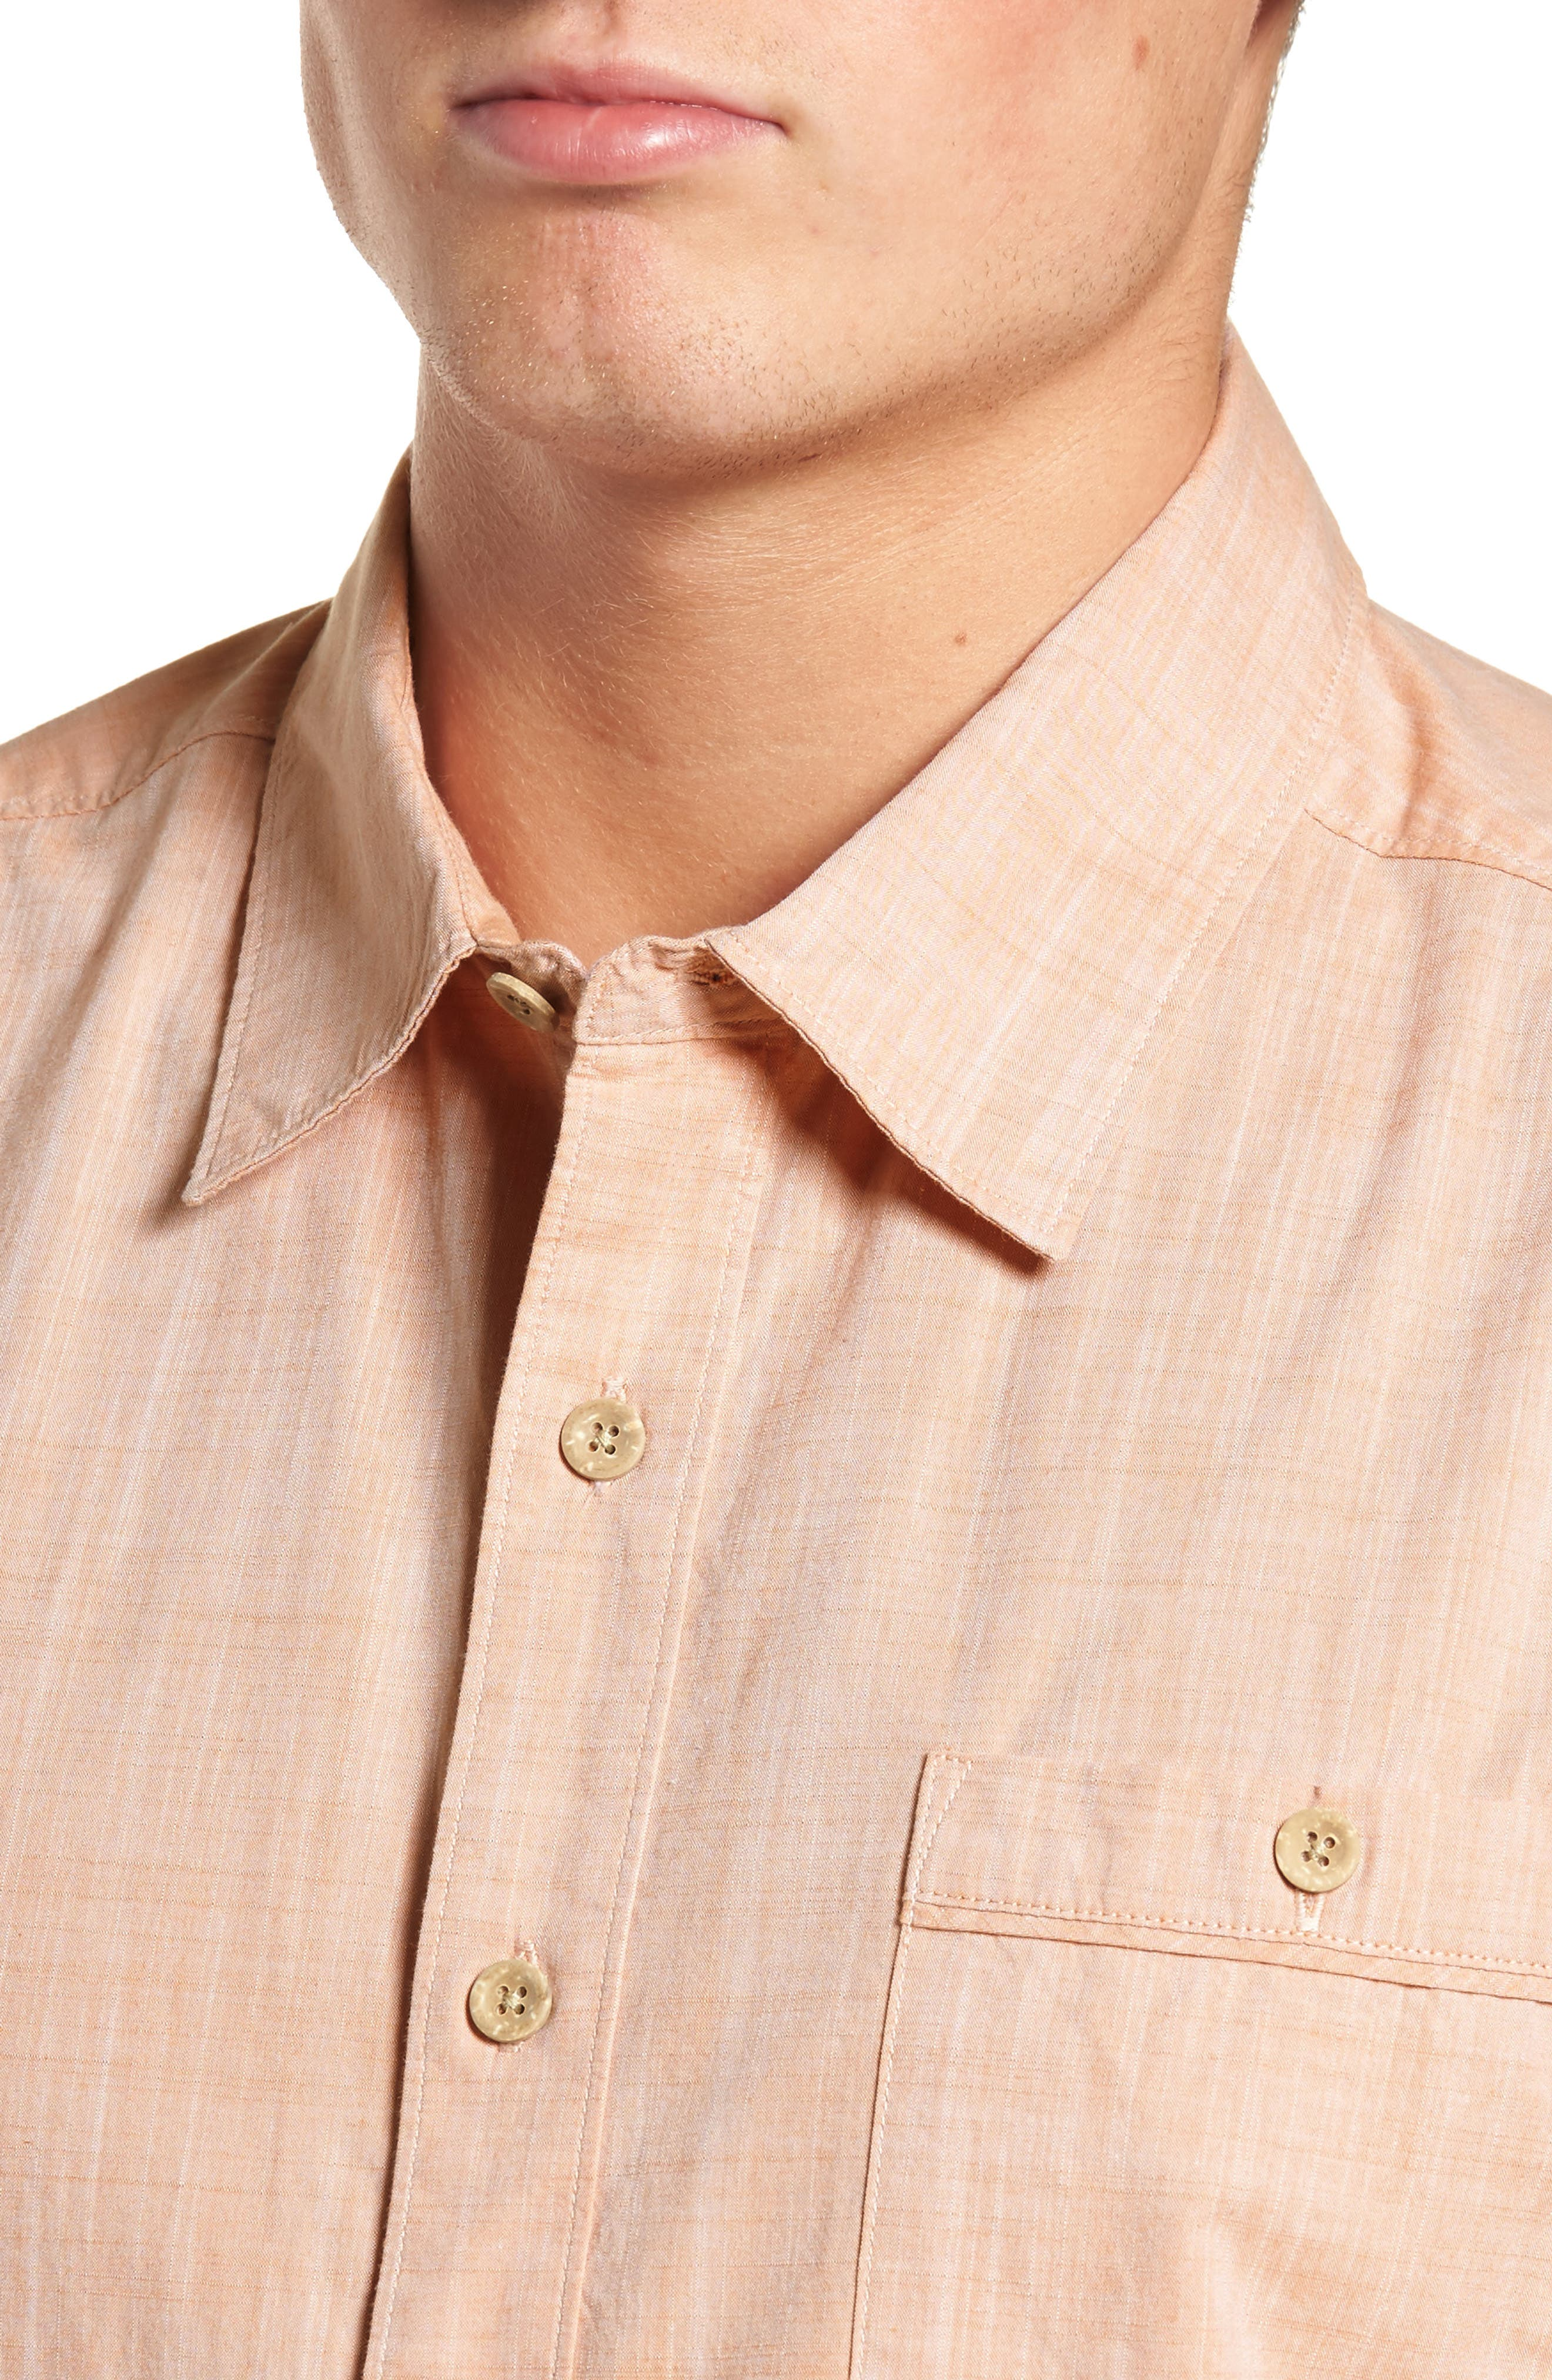 Mai Tai Regular Fit Sport Shirt,                             Alternate thumbnail 2, color,                             Papaya